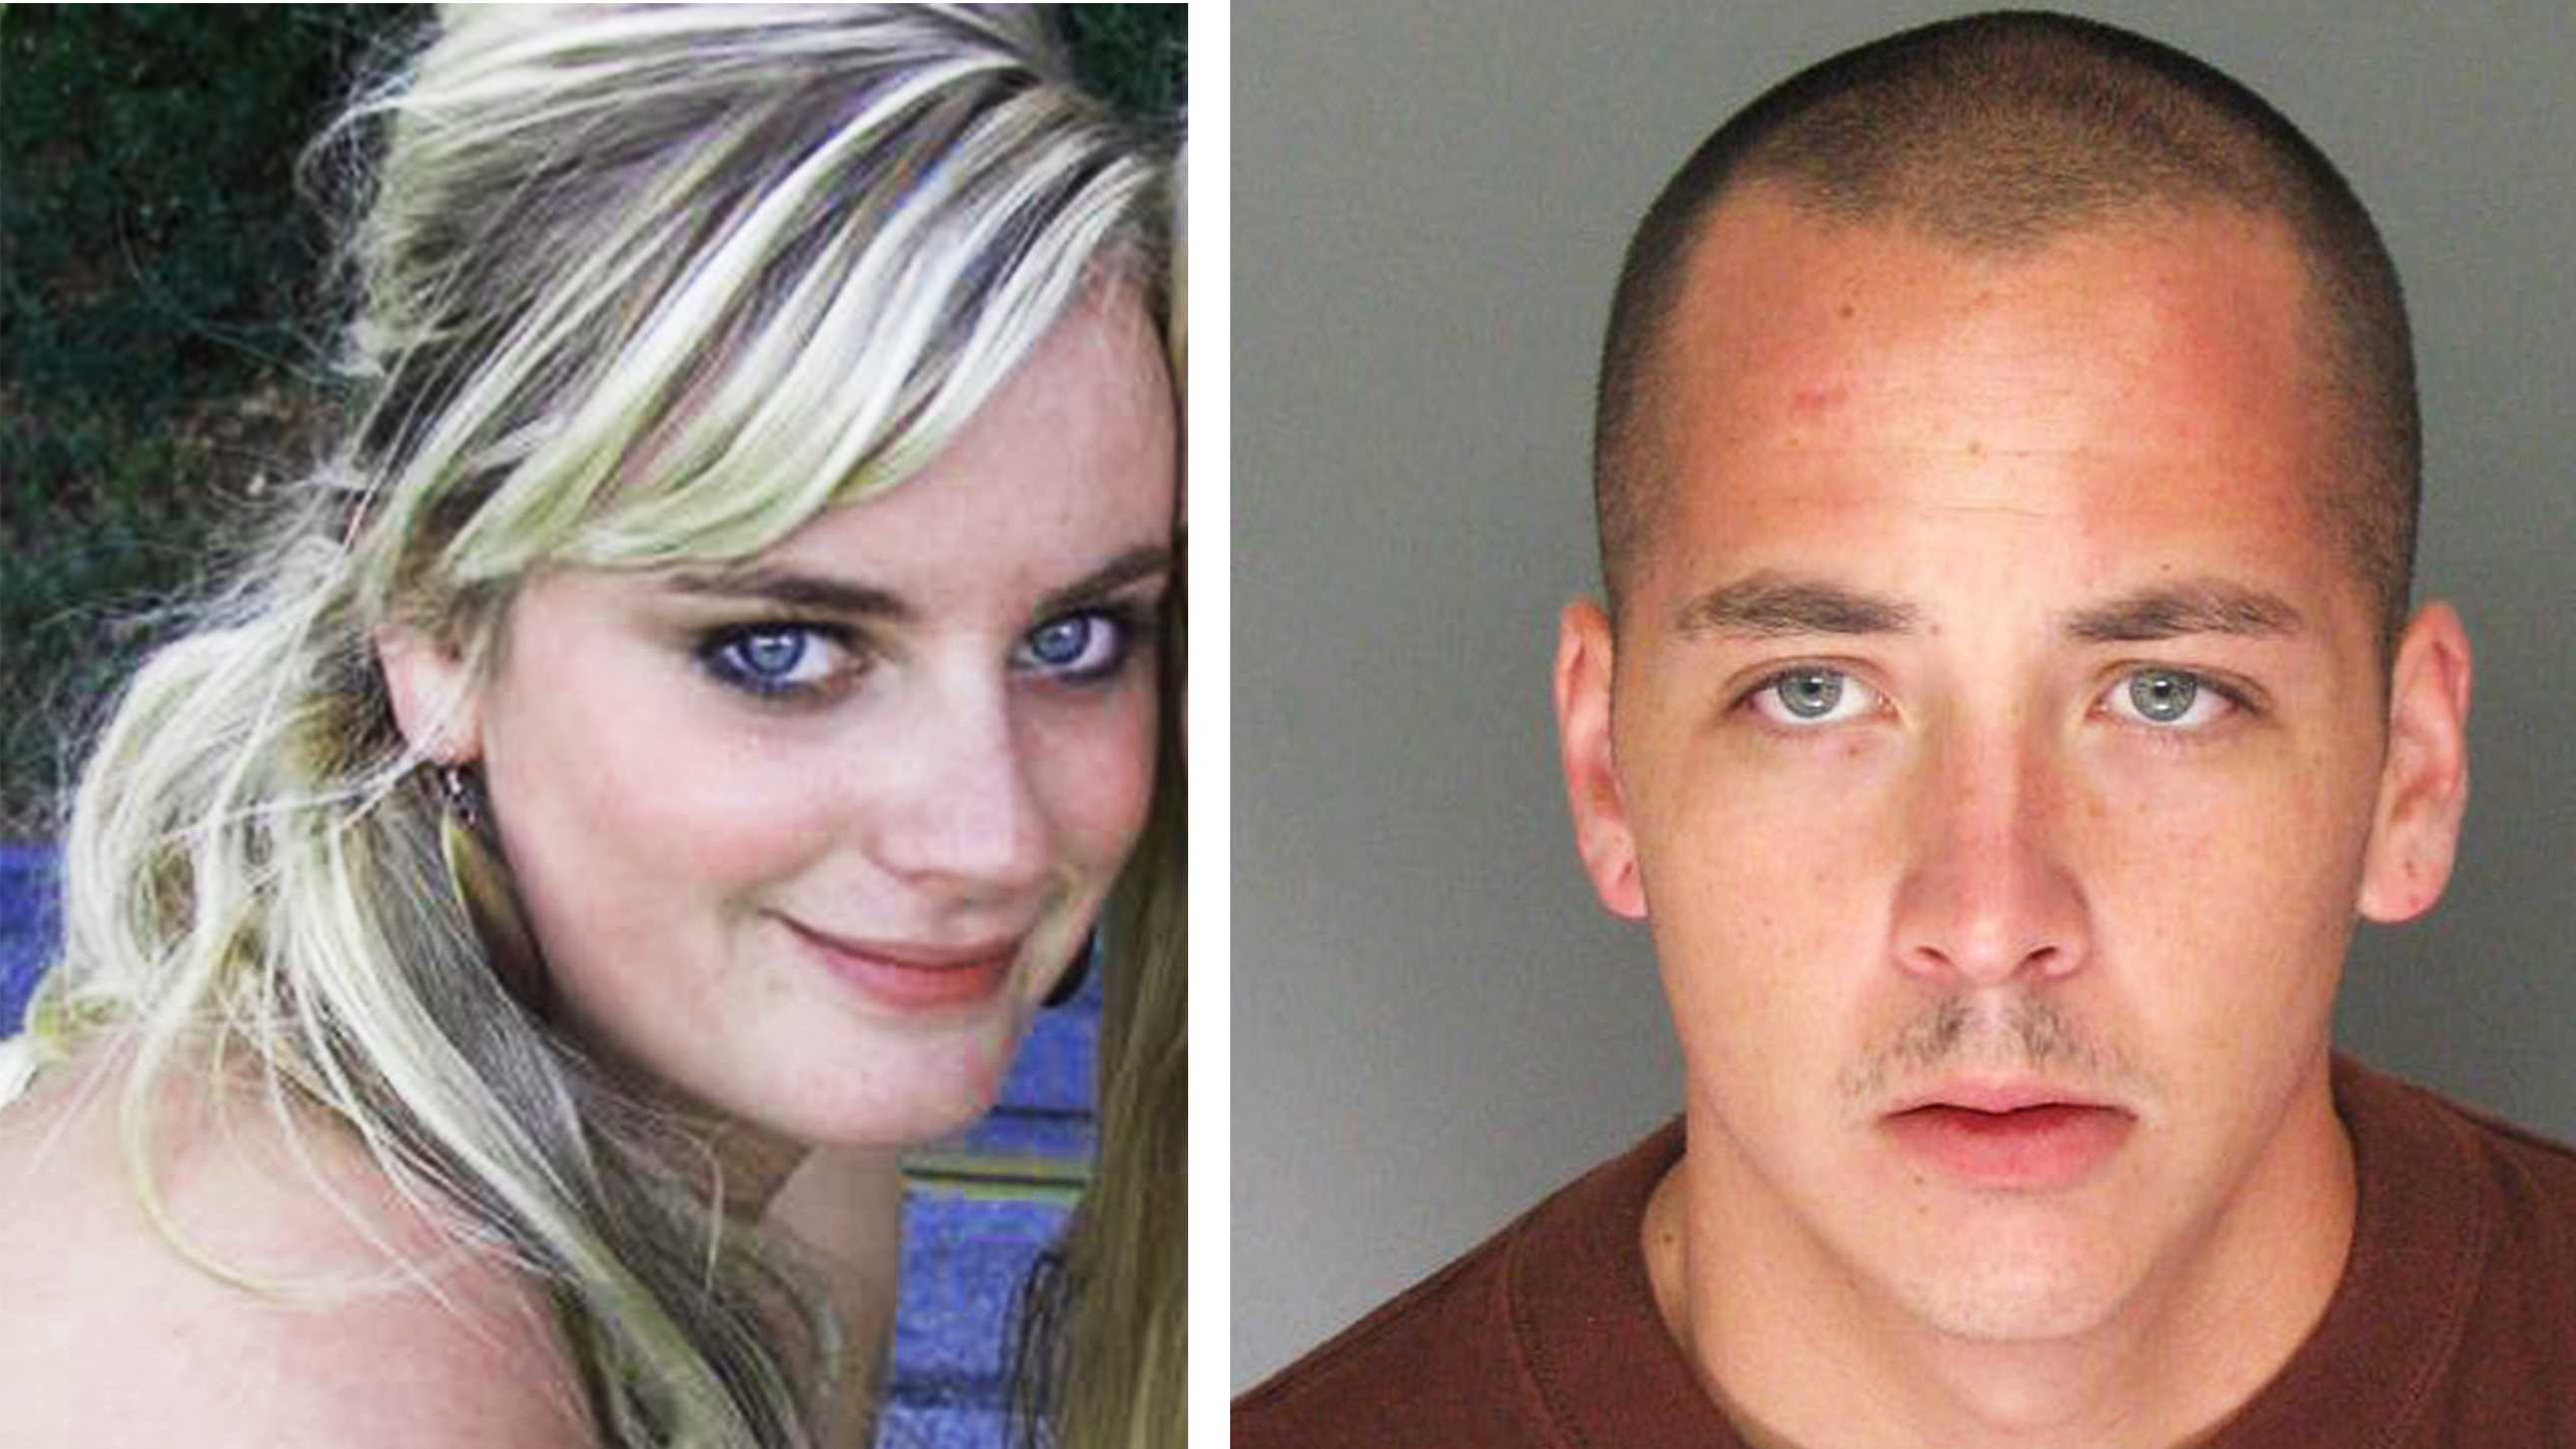 Lauren Michelle Lotz, left, and Mitra Osho Orescan, right, are being sought by Santa Cruz police.